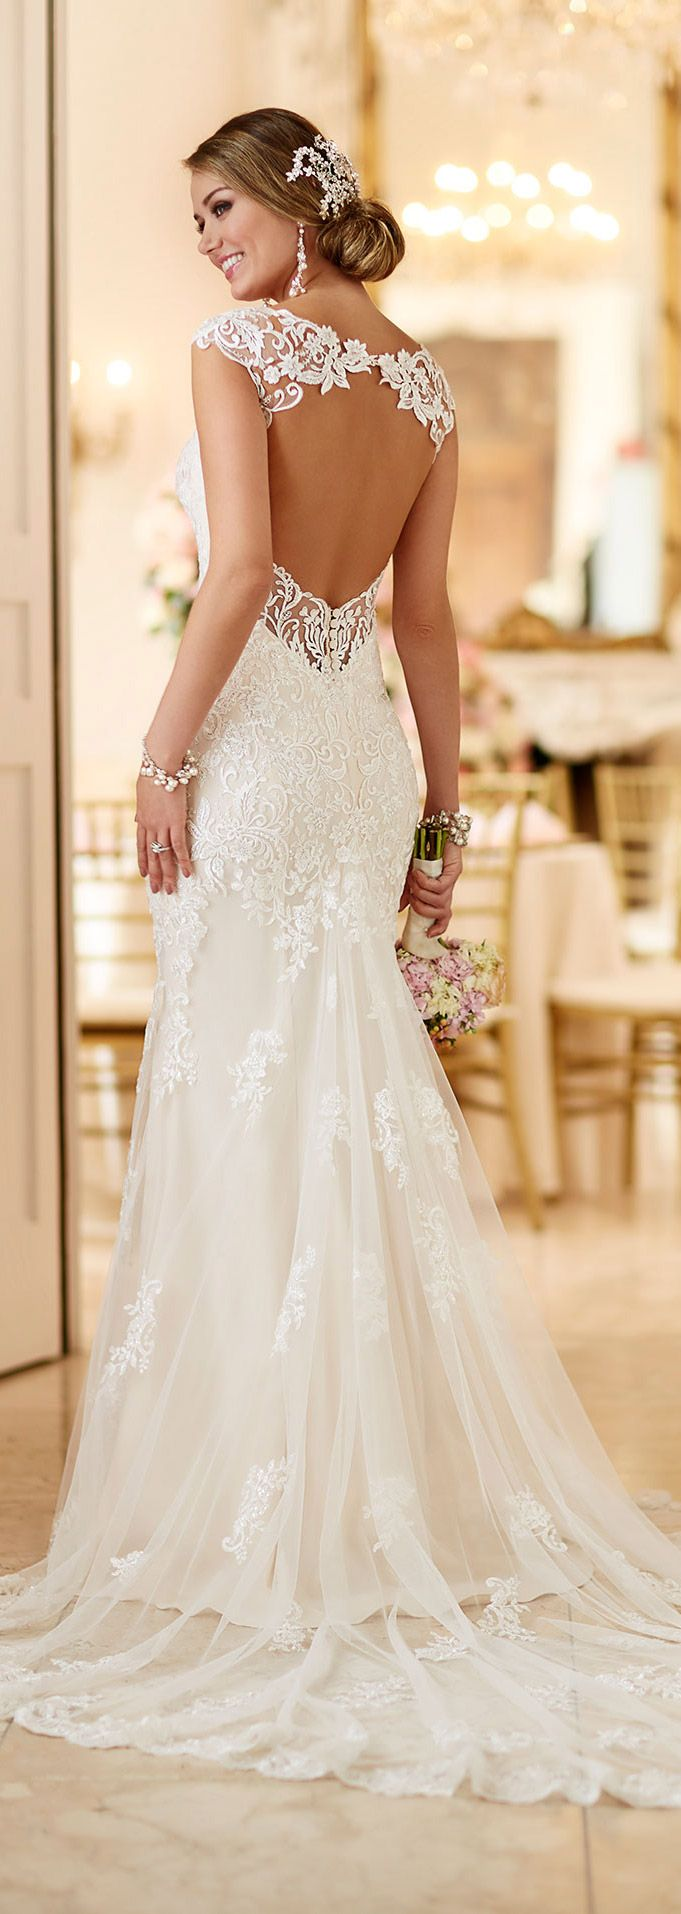 Vestiti Da Sposa Wish.Wish I Was Skinny Enough To Pull This Off Weddings Abiti